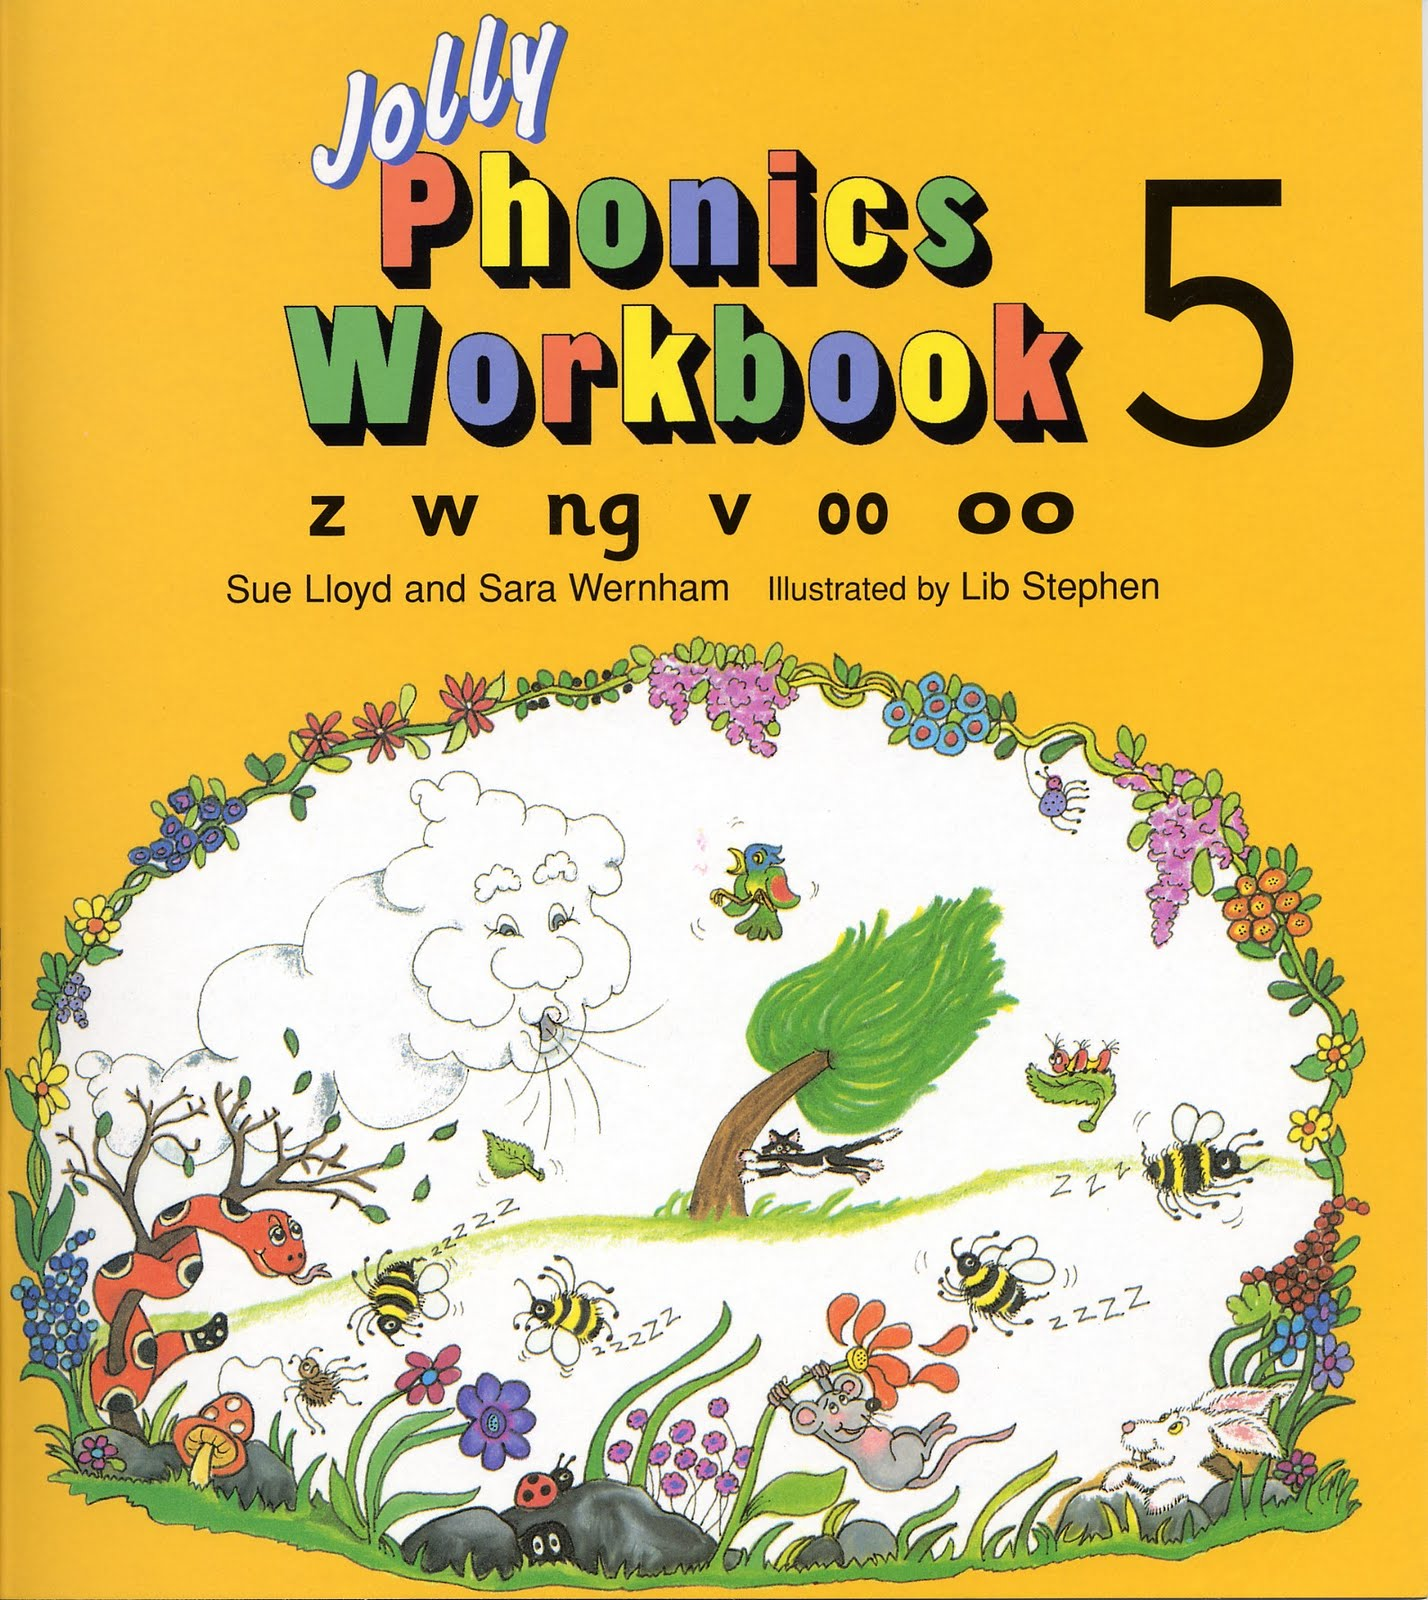 Free Download Ebook Jolly Phonics